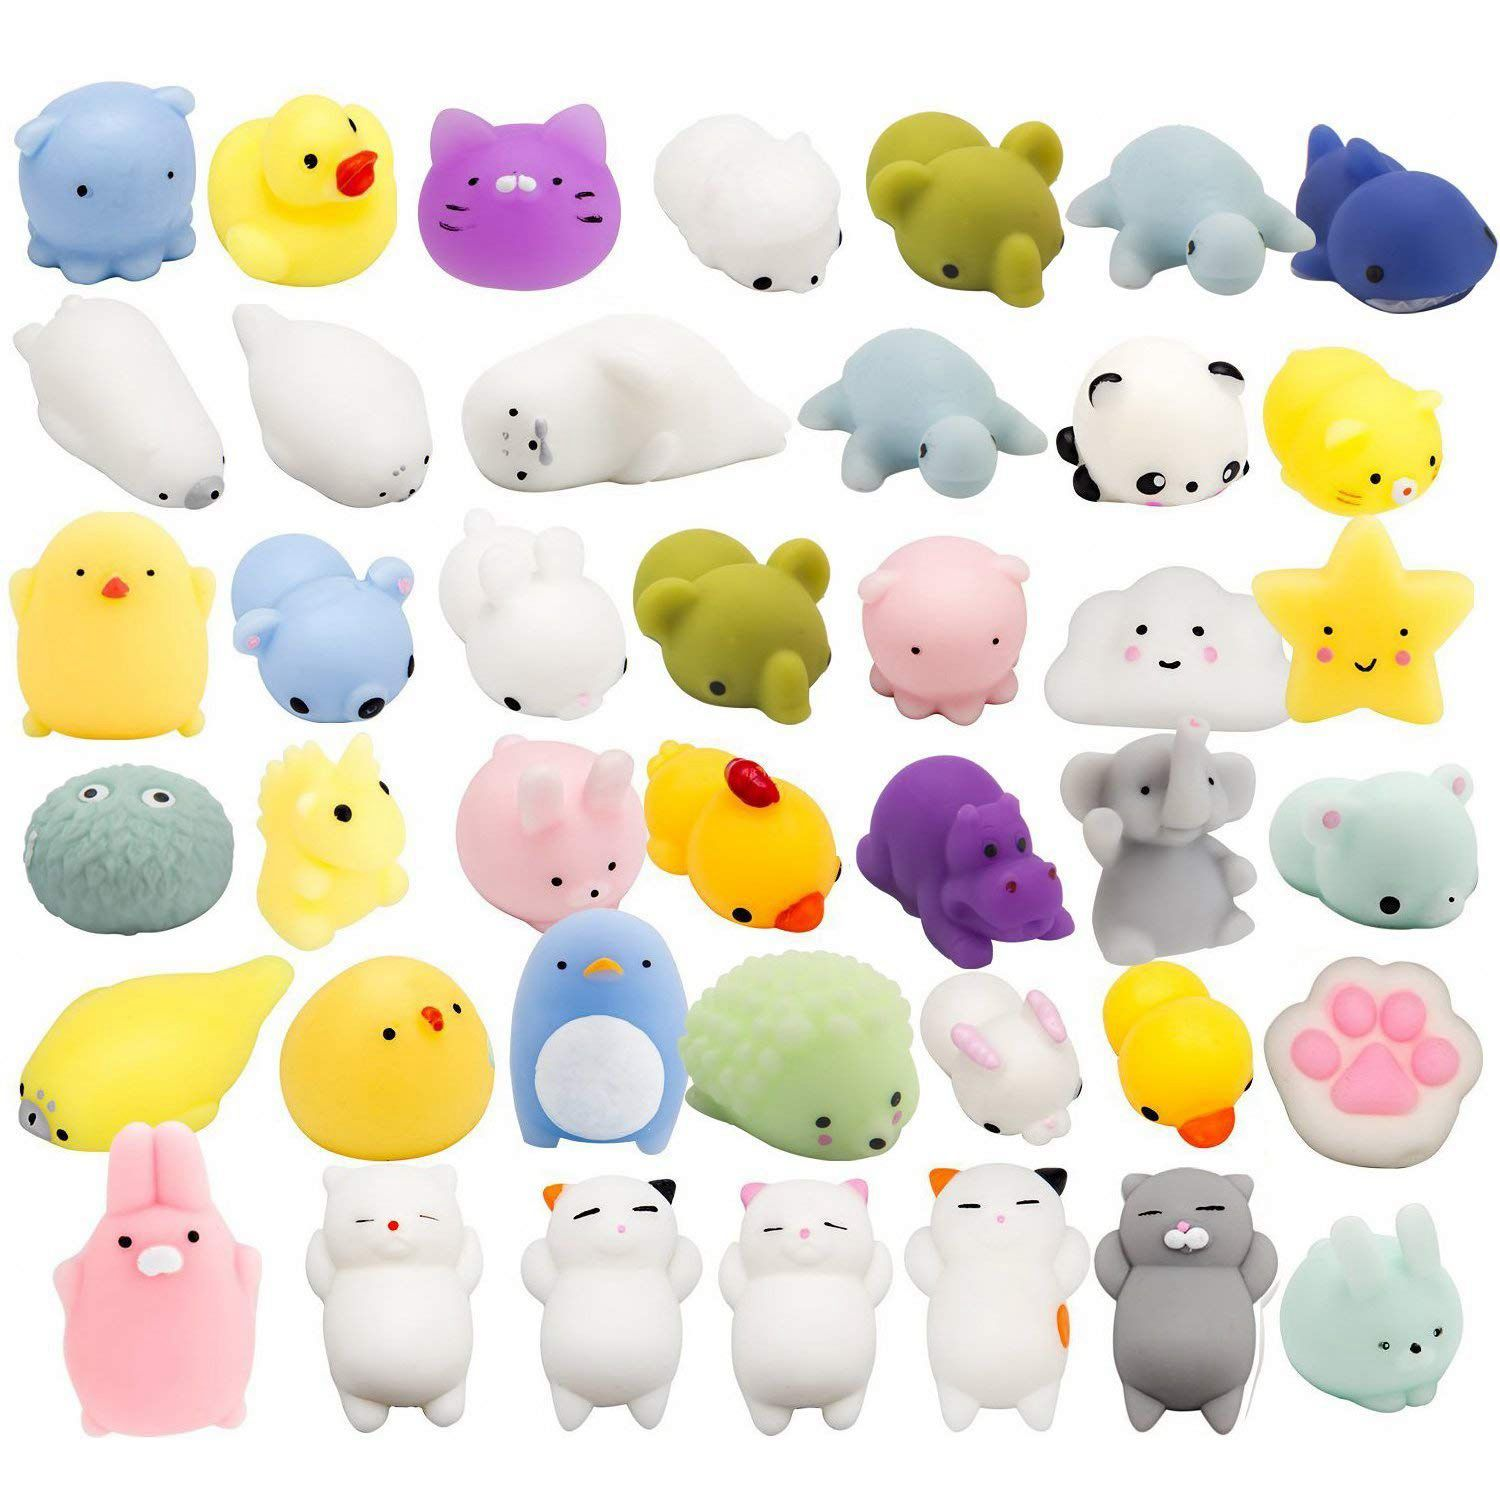 Random 30 Pcs Cute Animal Mochi Squishy, Kawaii Mini Soft Squeeze Toy,Fidget Hand Toy For Kids Gift,Stress Relief,Decoration,